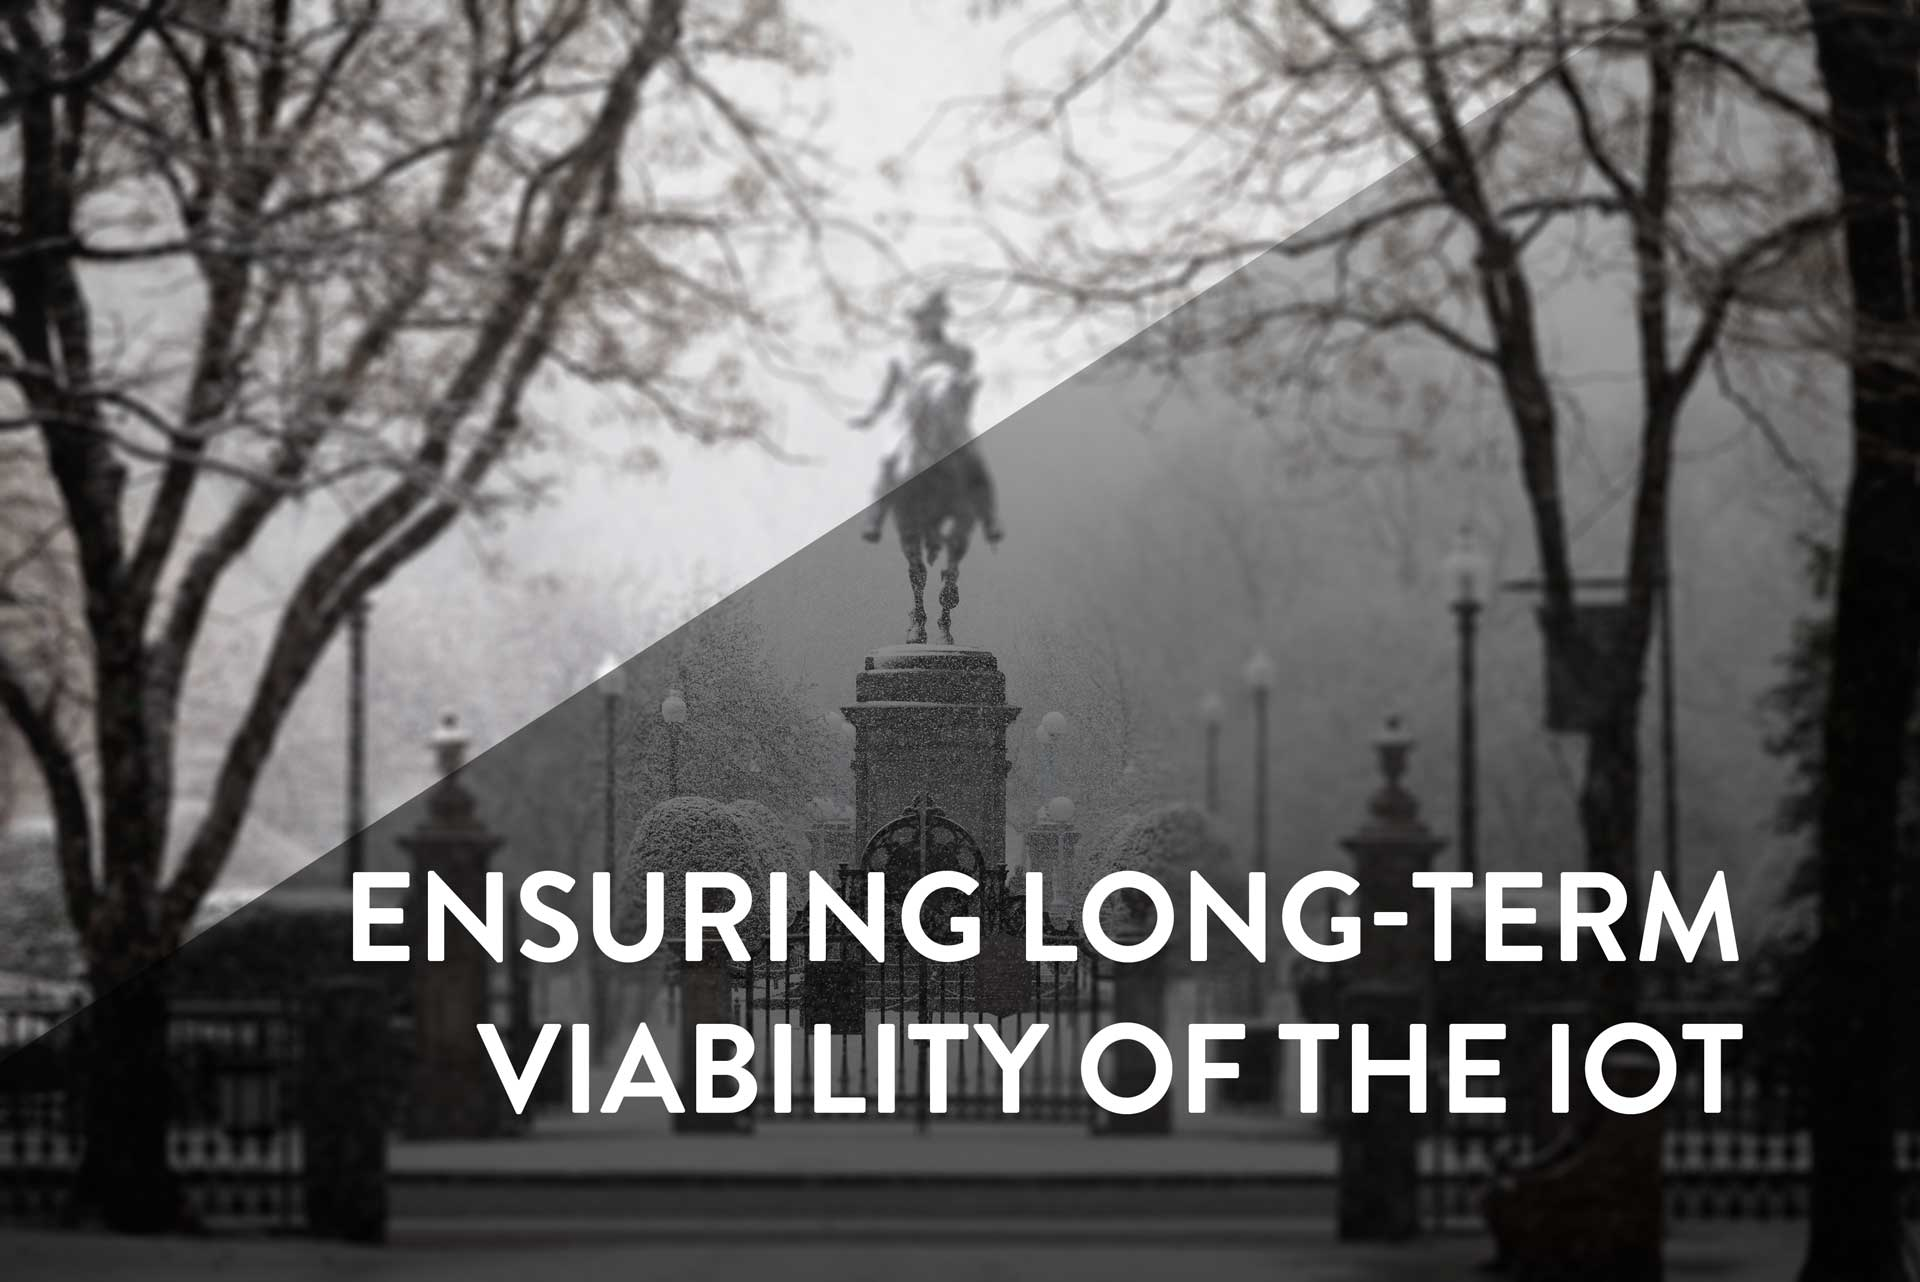 iot long term viability